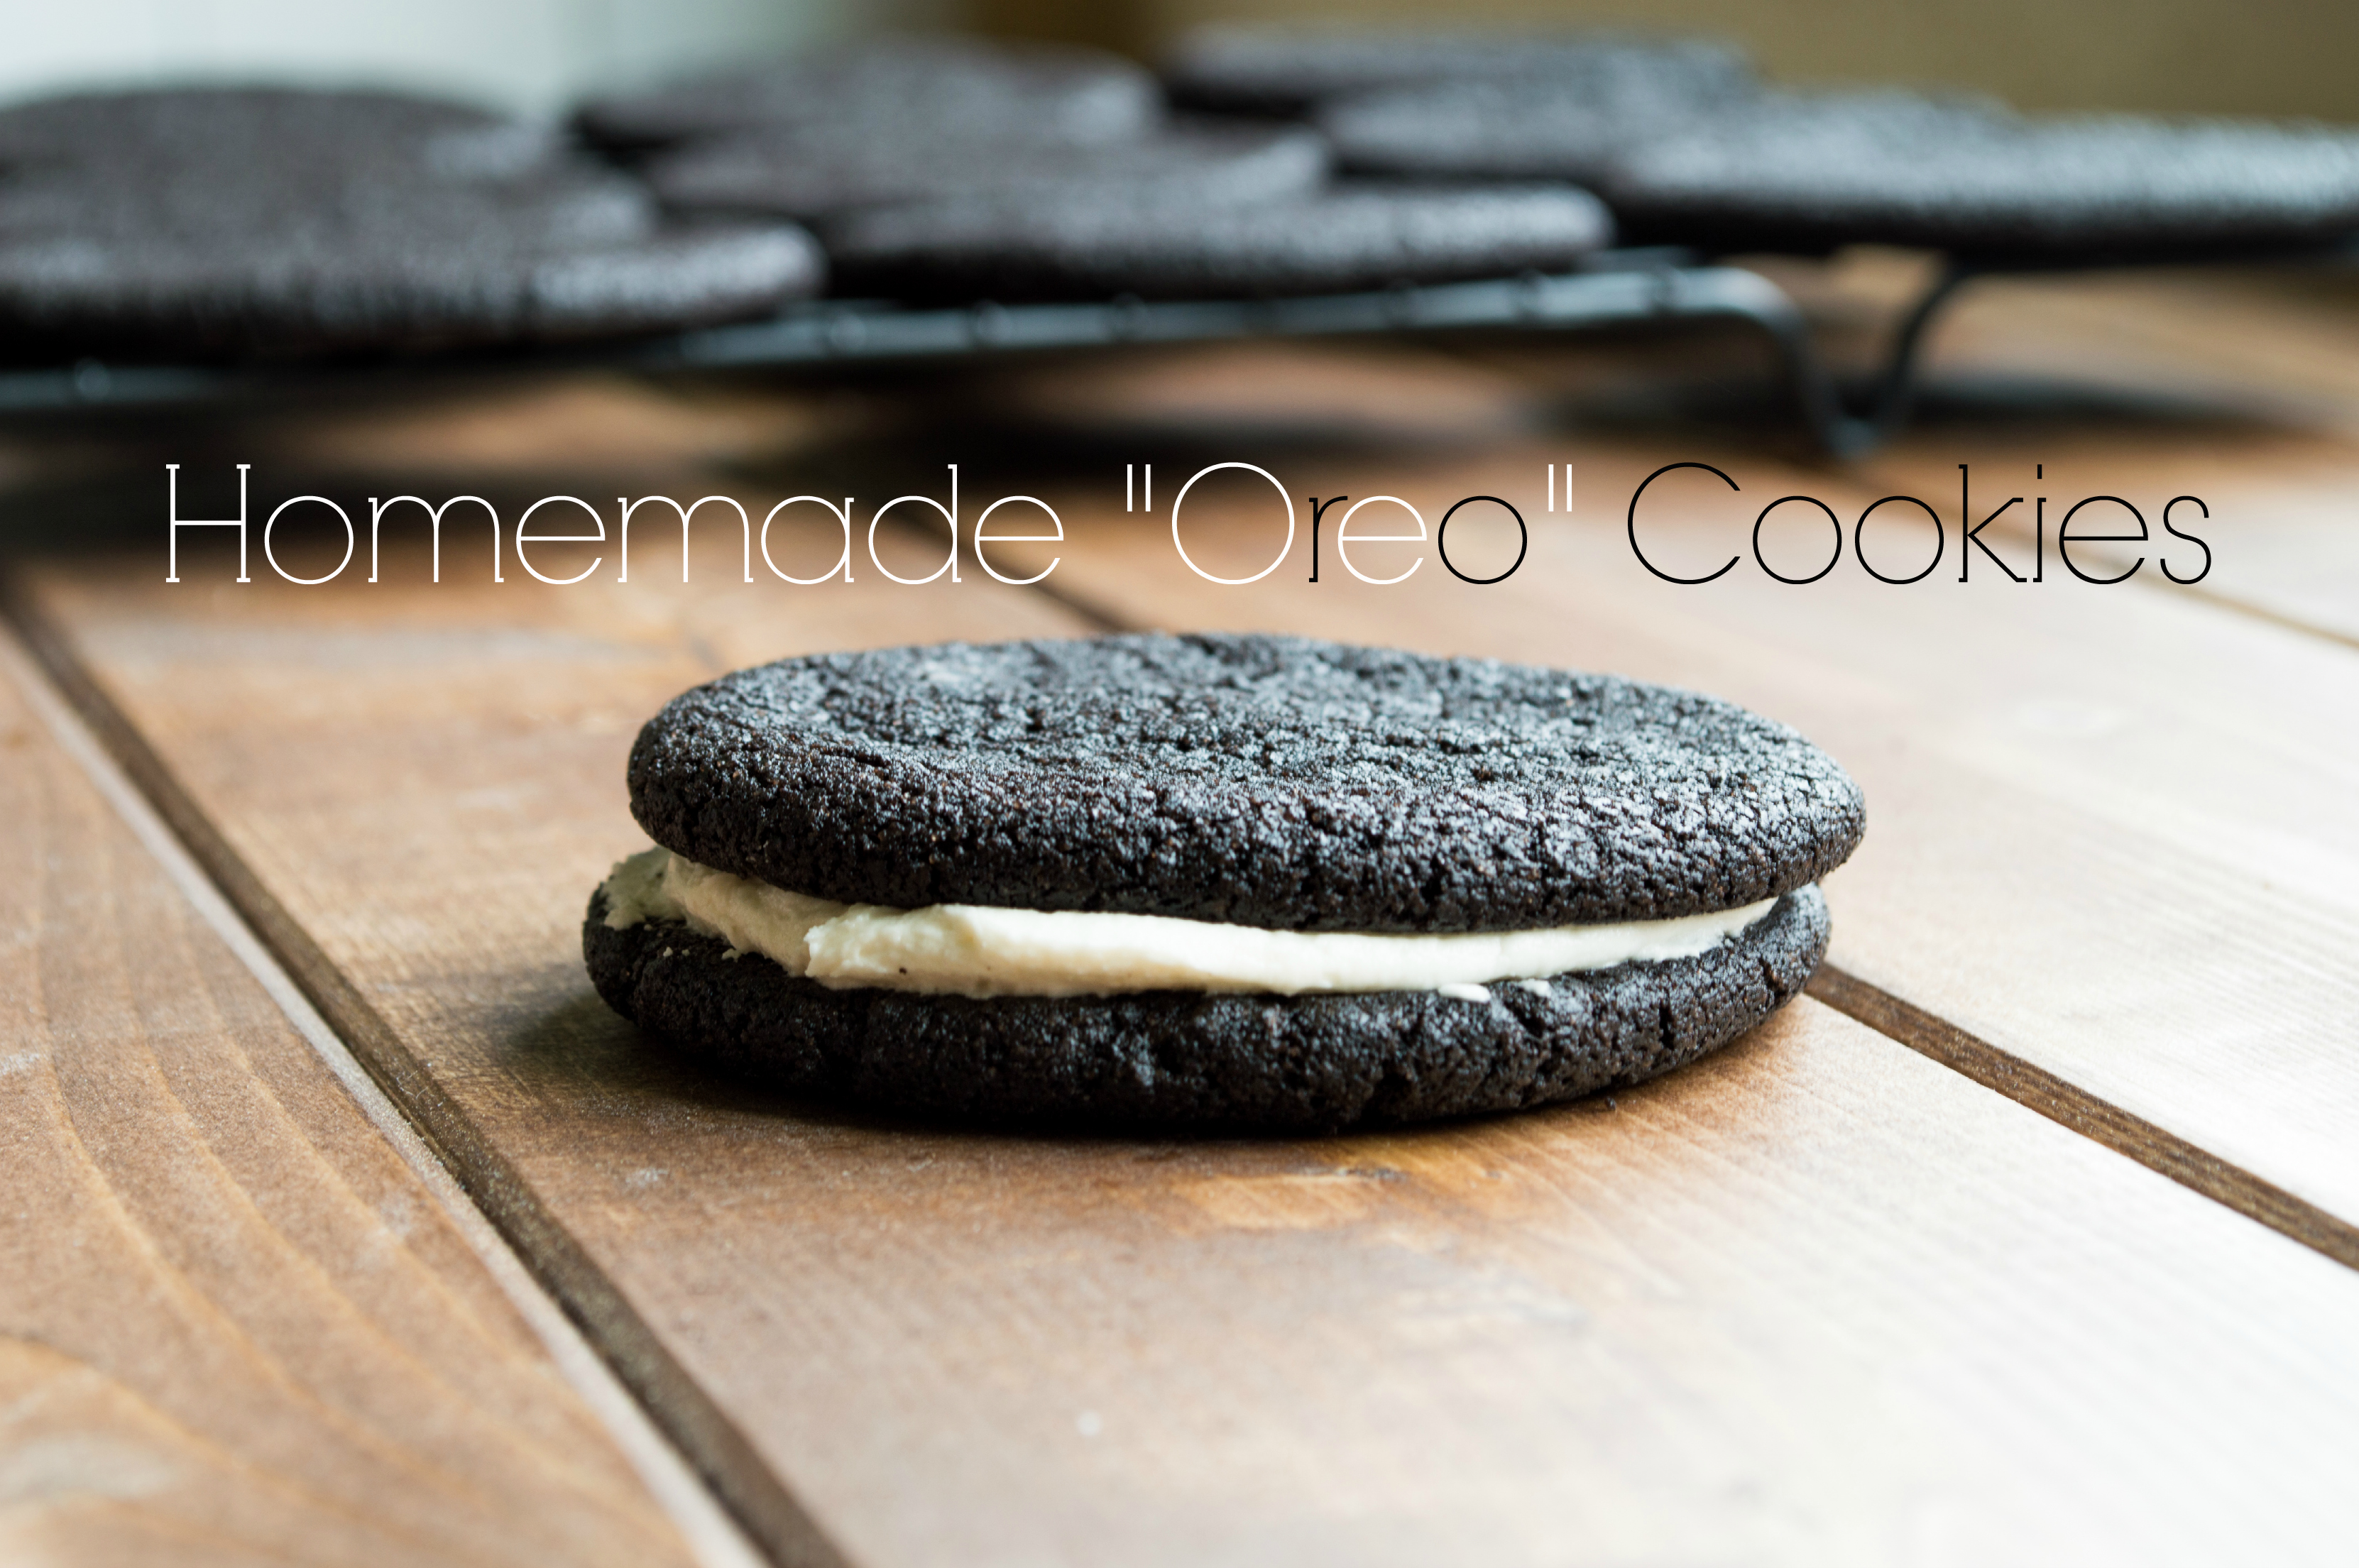 Homemade Oreo Cookies | A Bite of Becky